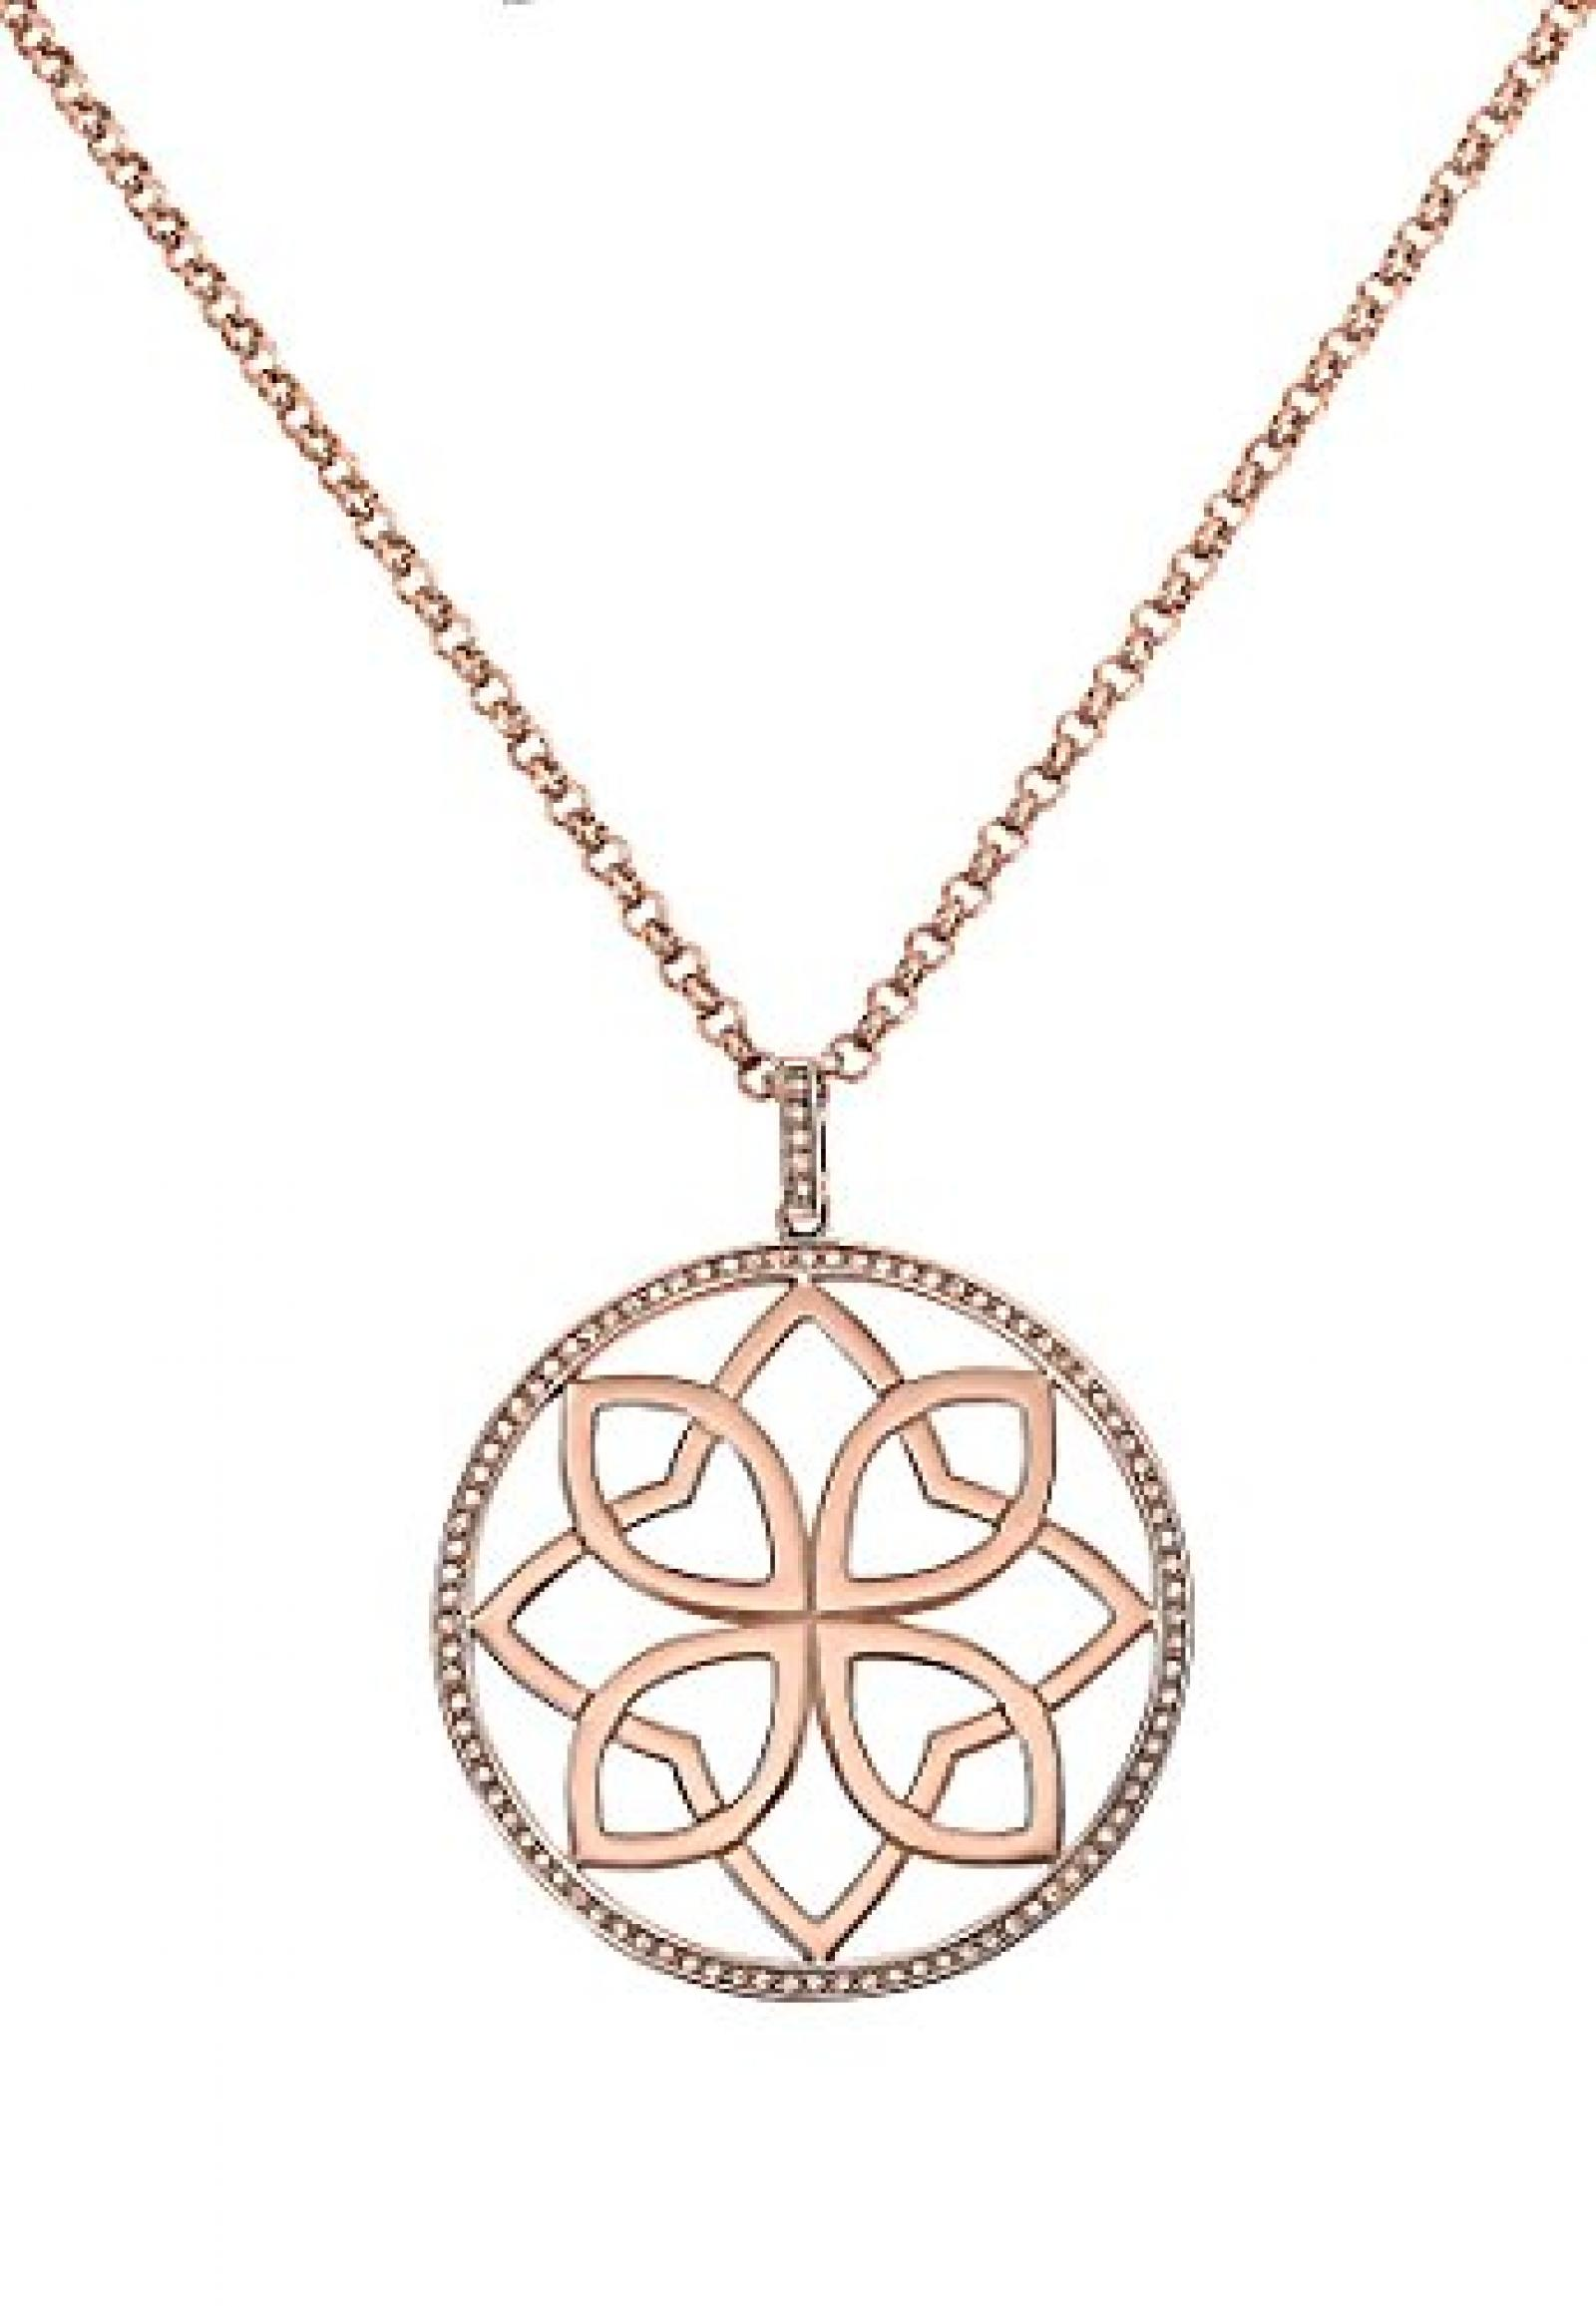 JETTE Magic Passion Damen-Collier CHAKRA Metall 93 Kristalle rosé, One Size